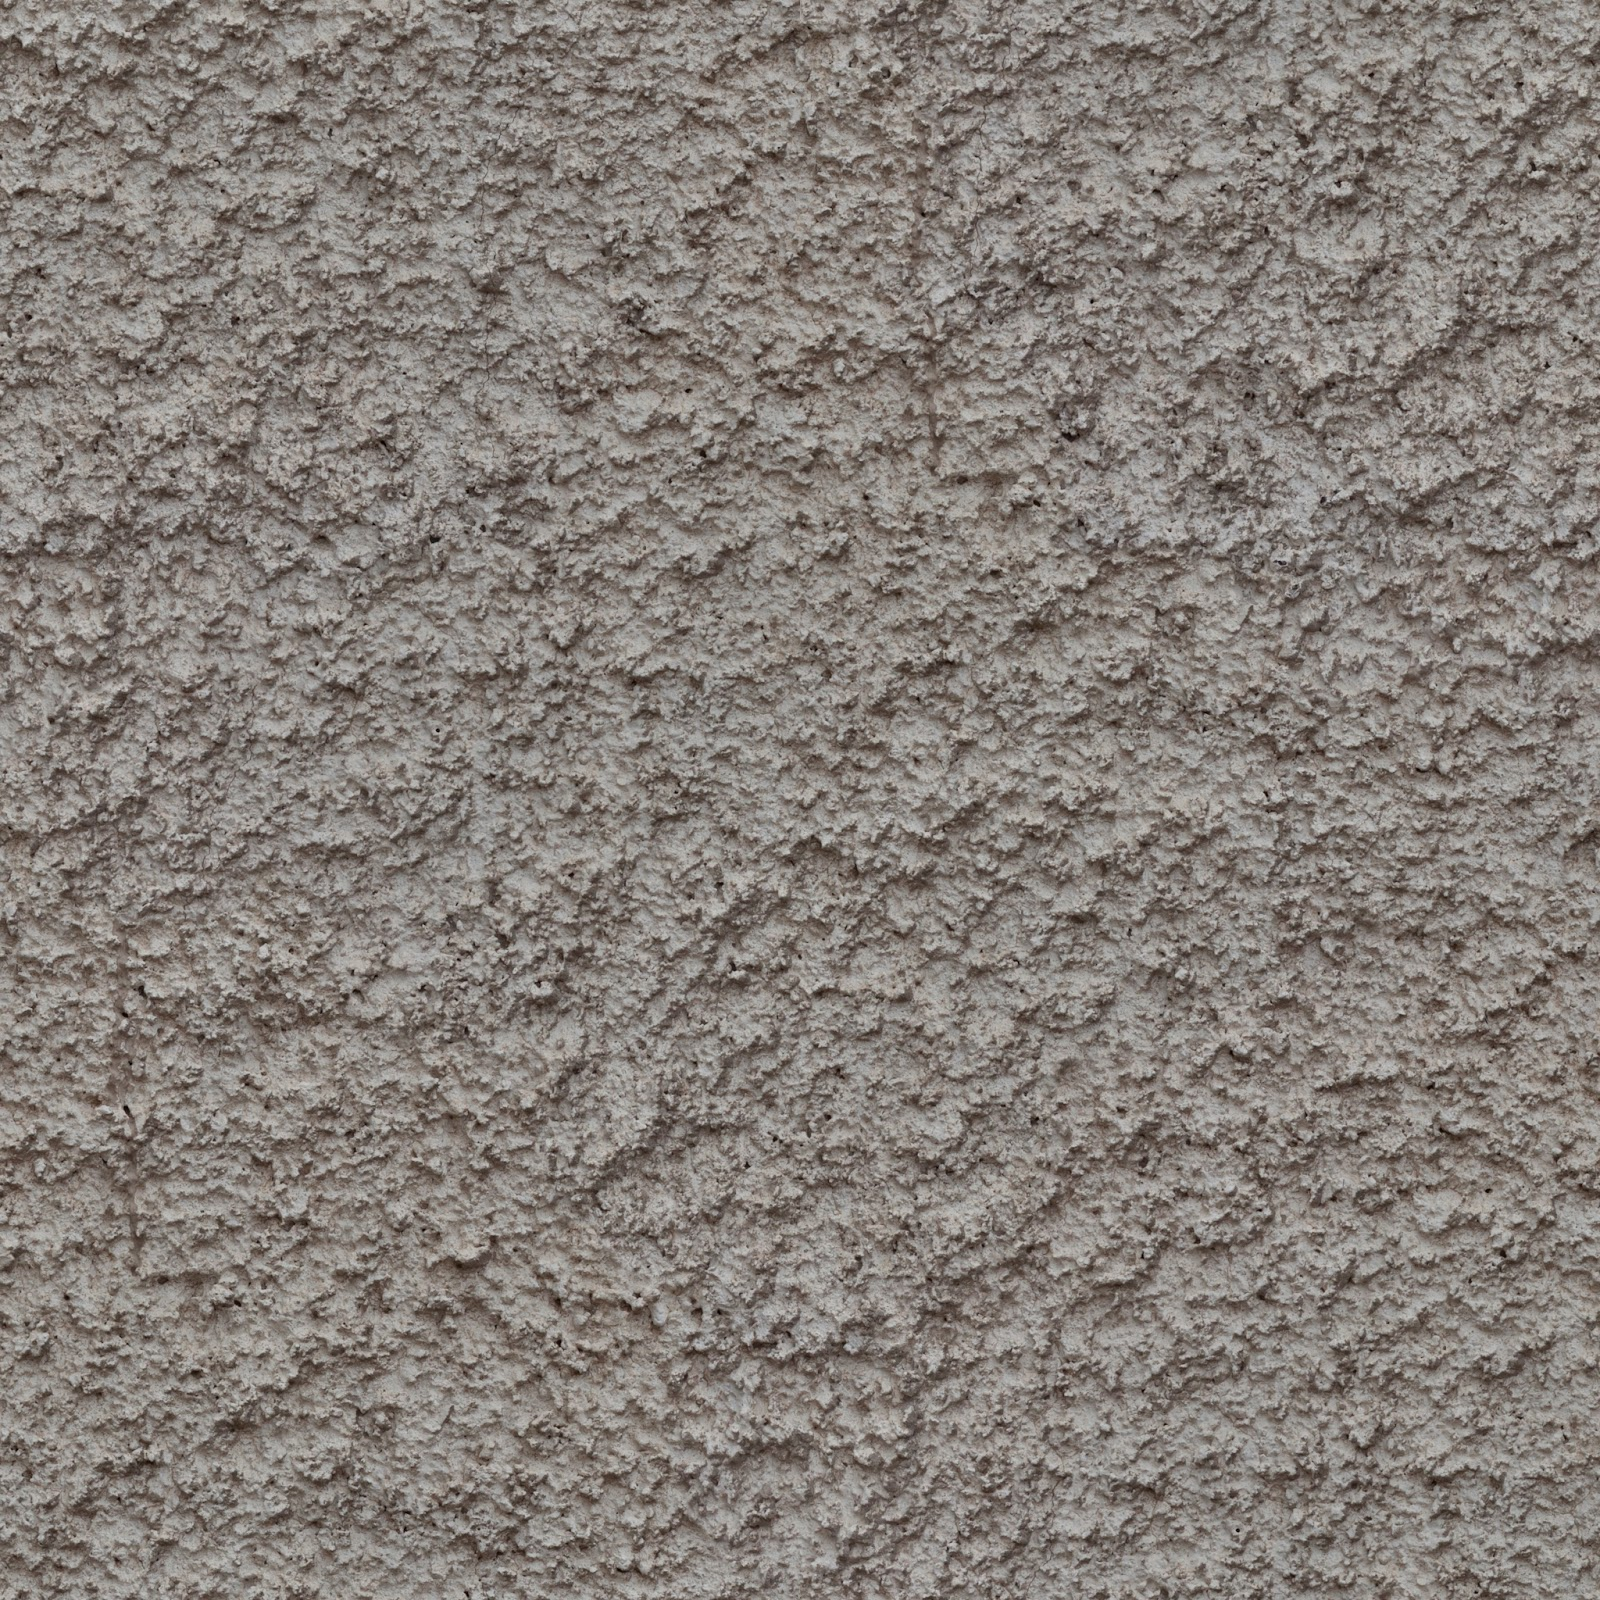 High Resolution Seamless Textures Rough Grey Stucco Texture